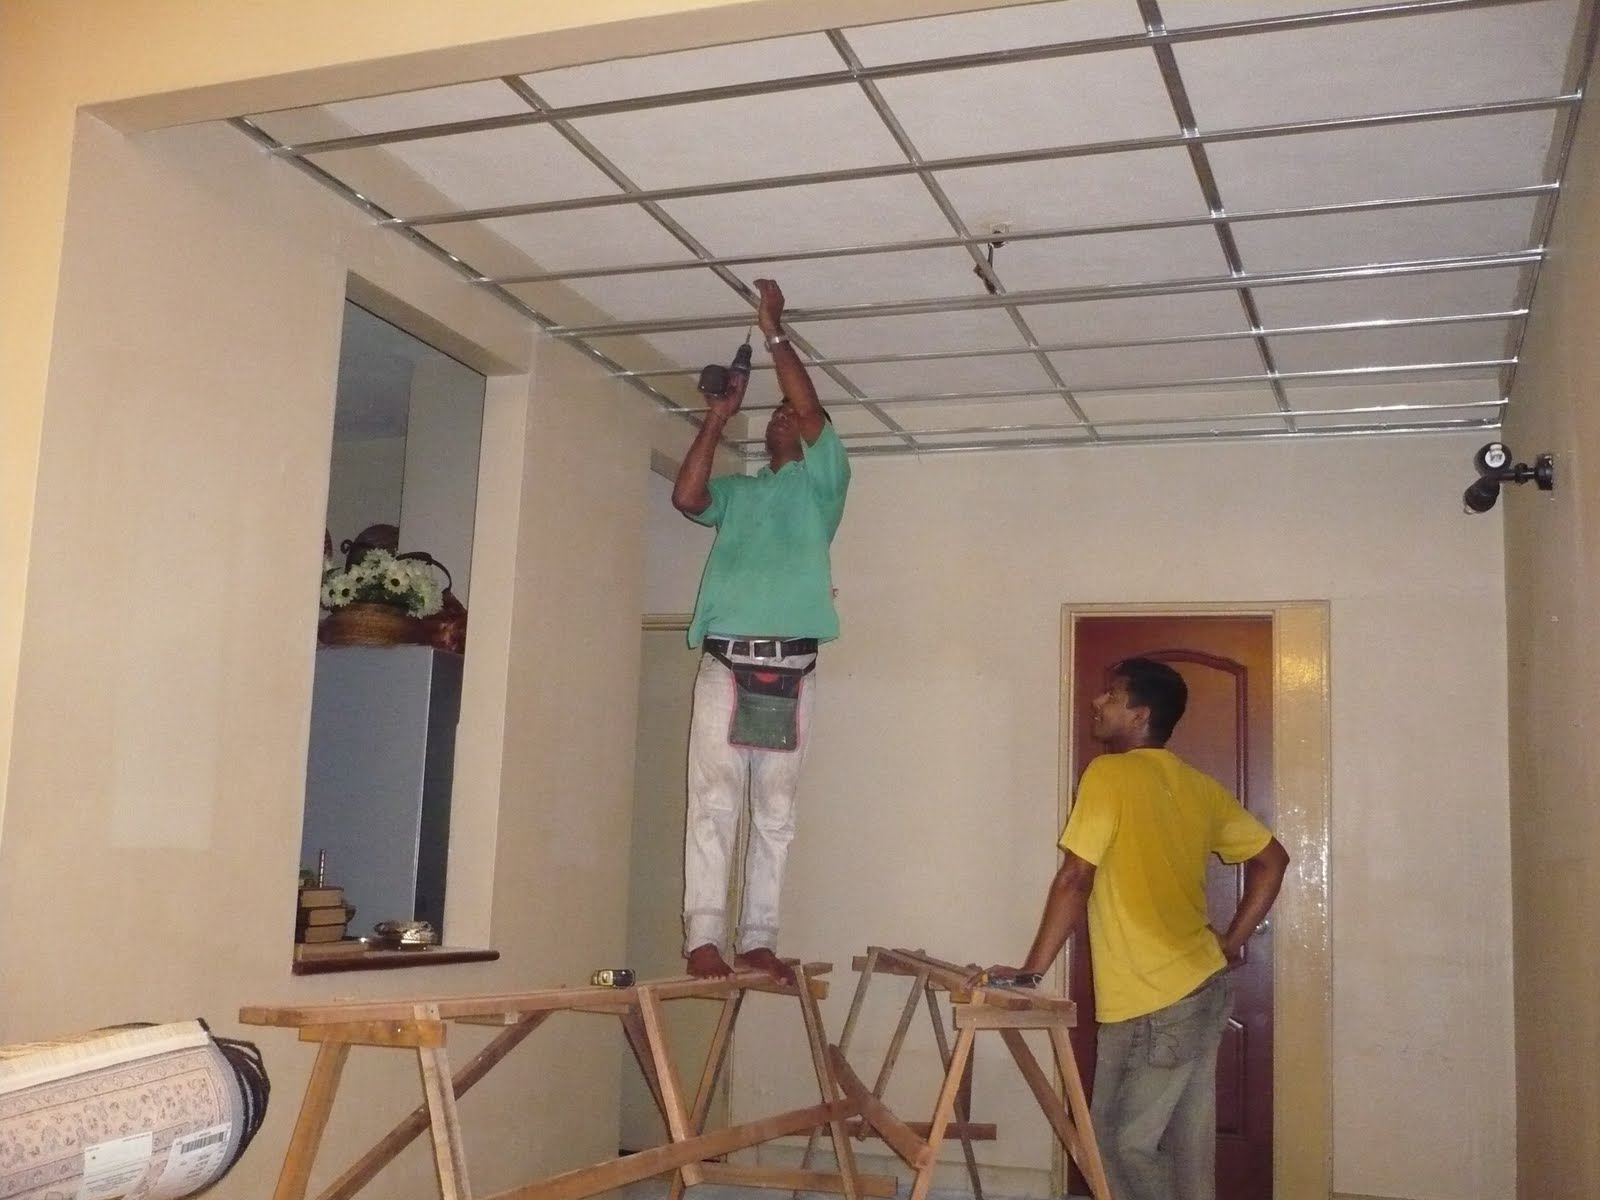 Mereka Pasang Bars Utk Support The Ceiling Board